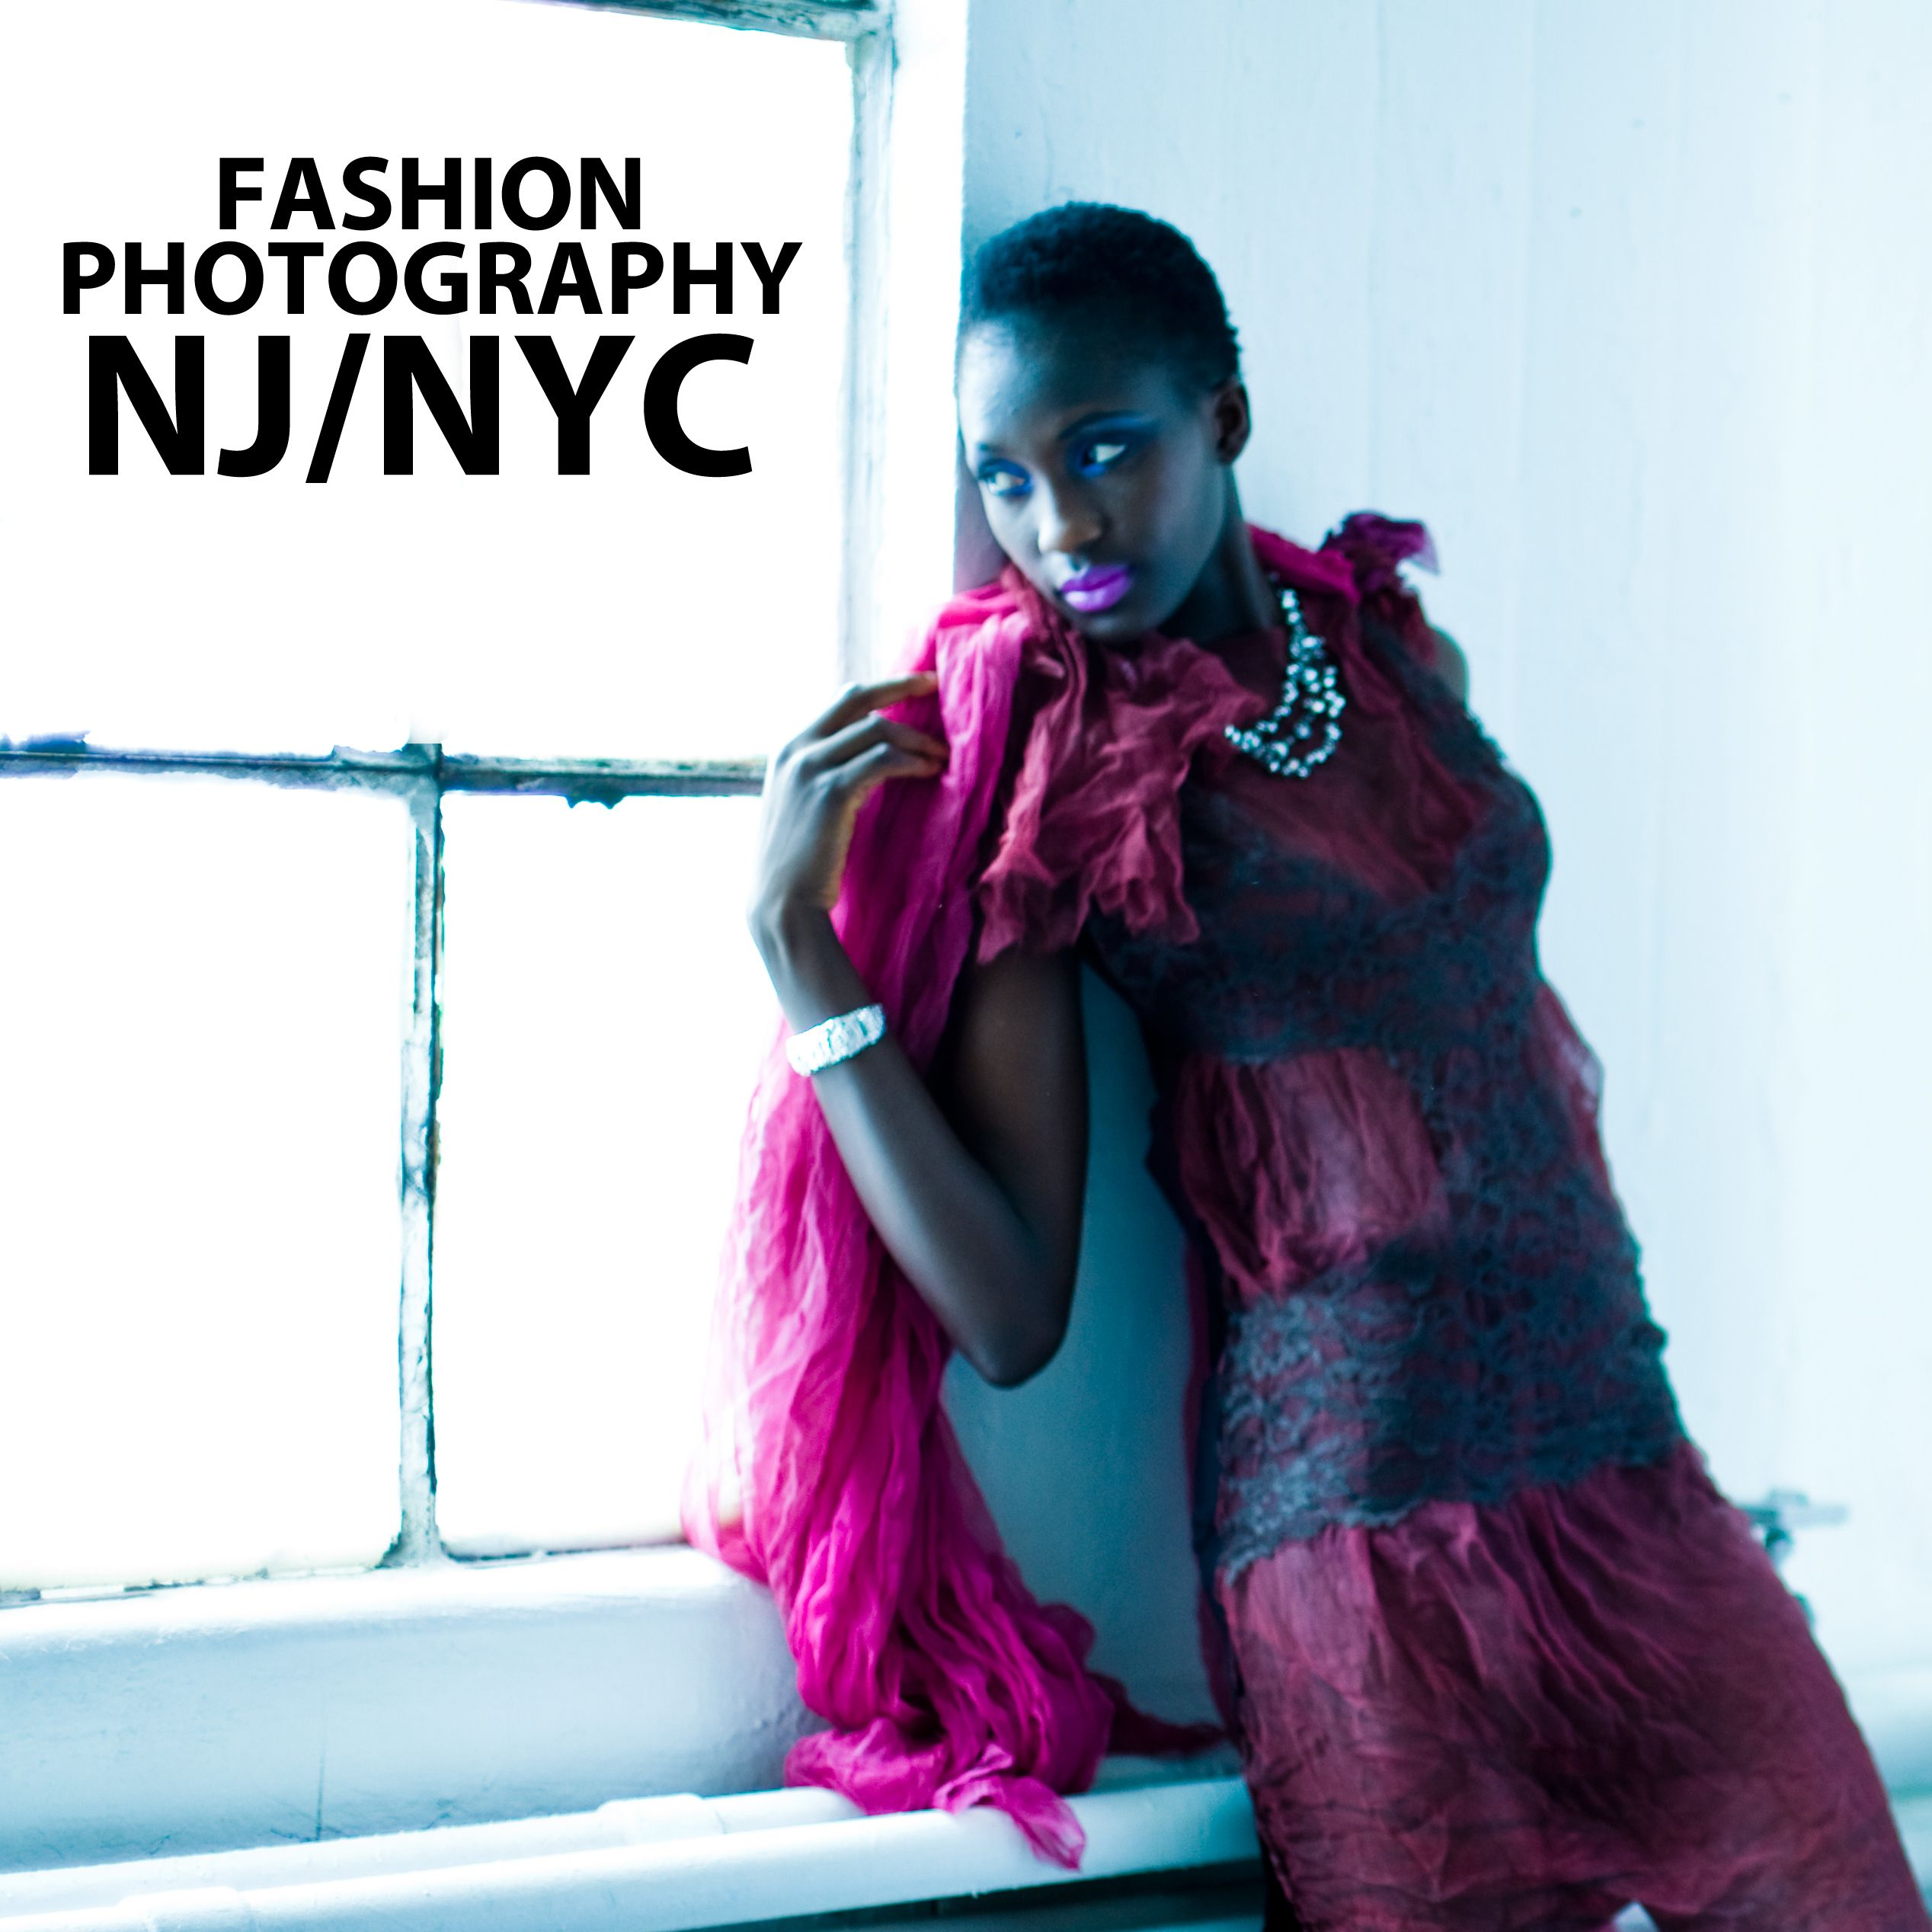 Tri State Fashion Photography New Jersey Nyc Hoboken Nj Meetup